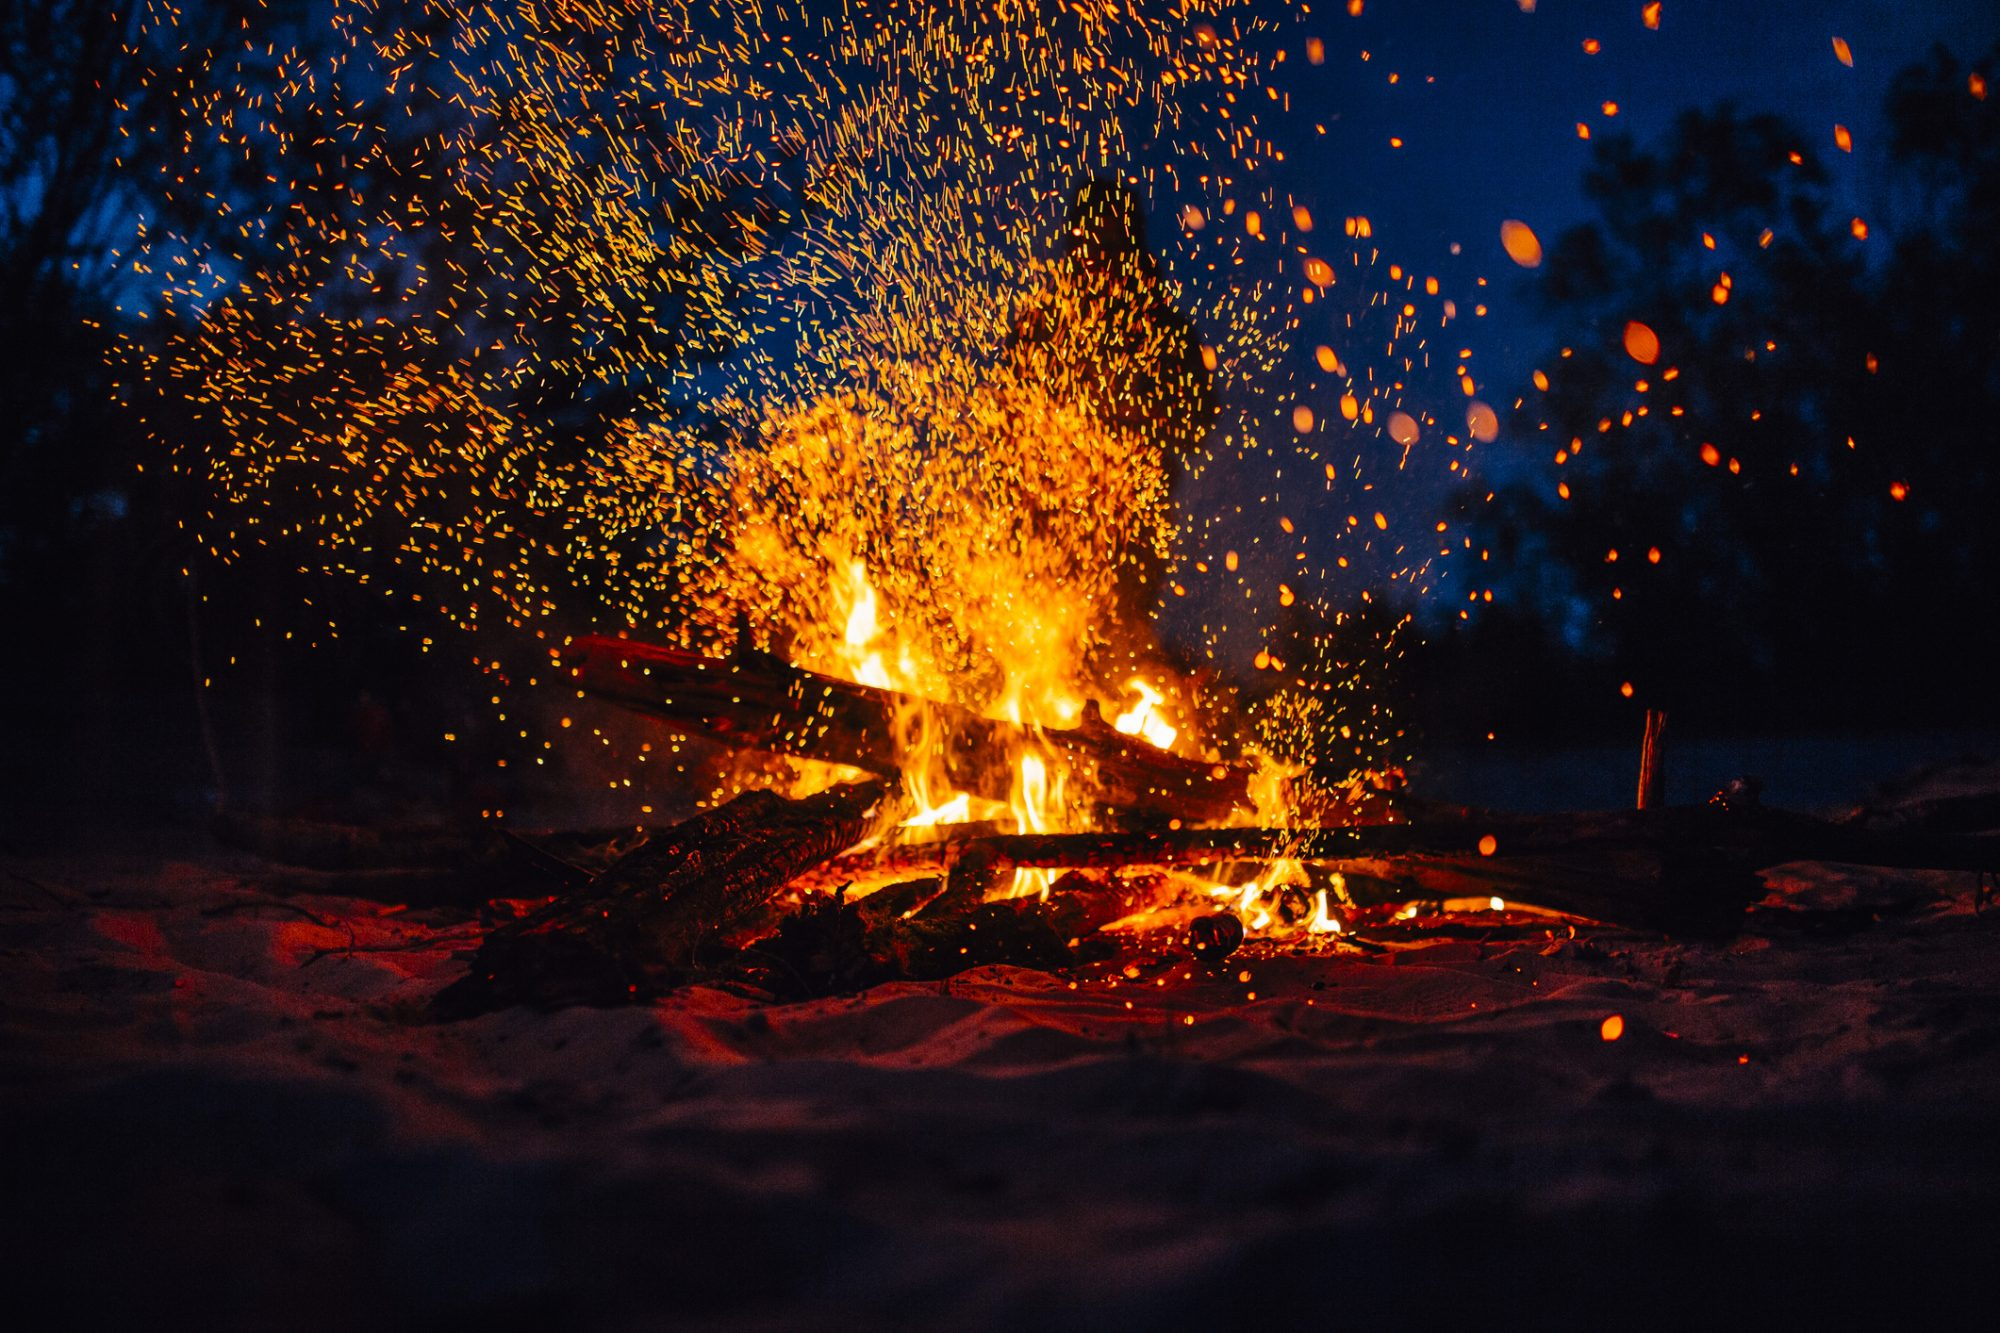 Summer beach bonfire with sparks flying around